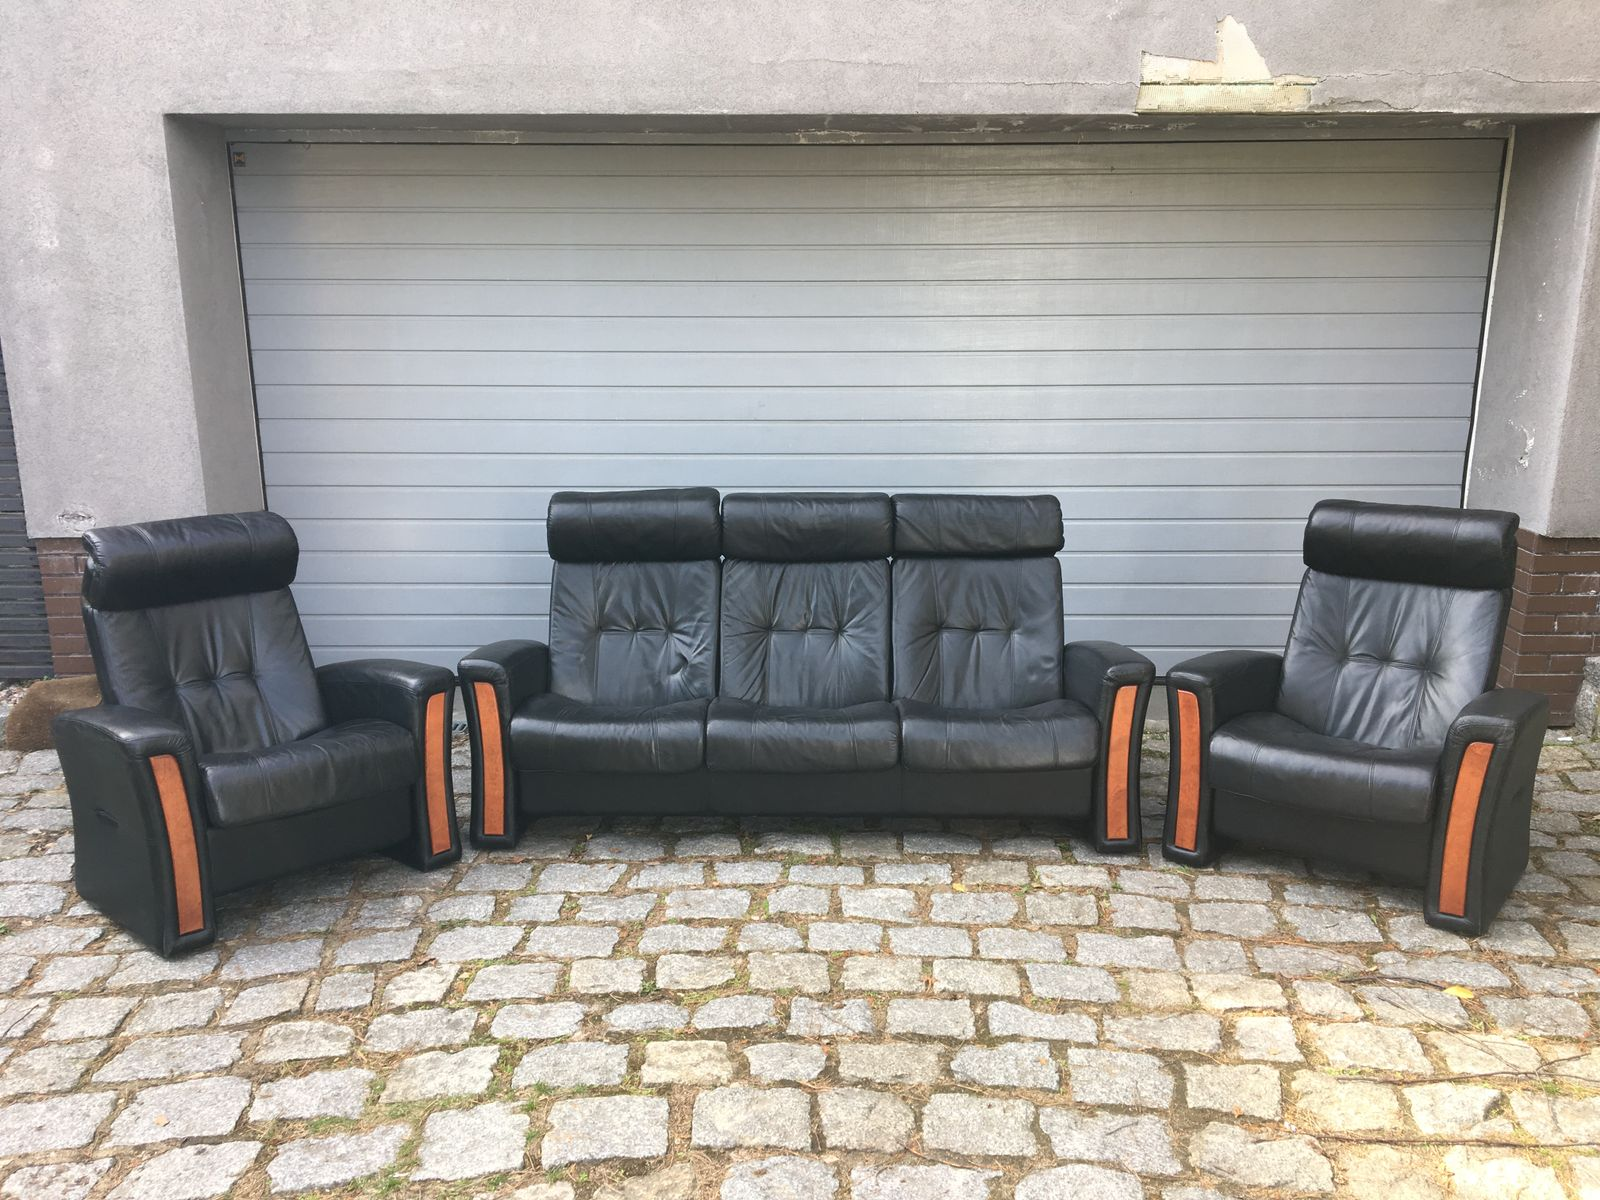 Vintage reclining leather living room set for sale at pamono for Sofa bed brault et martineau